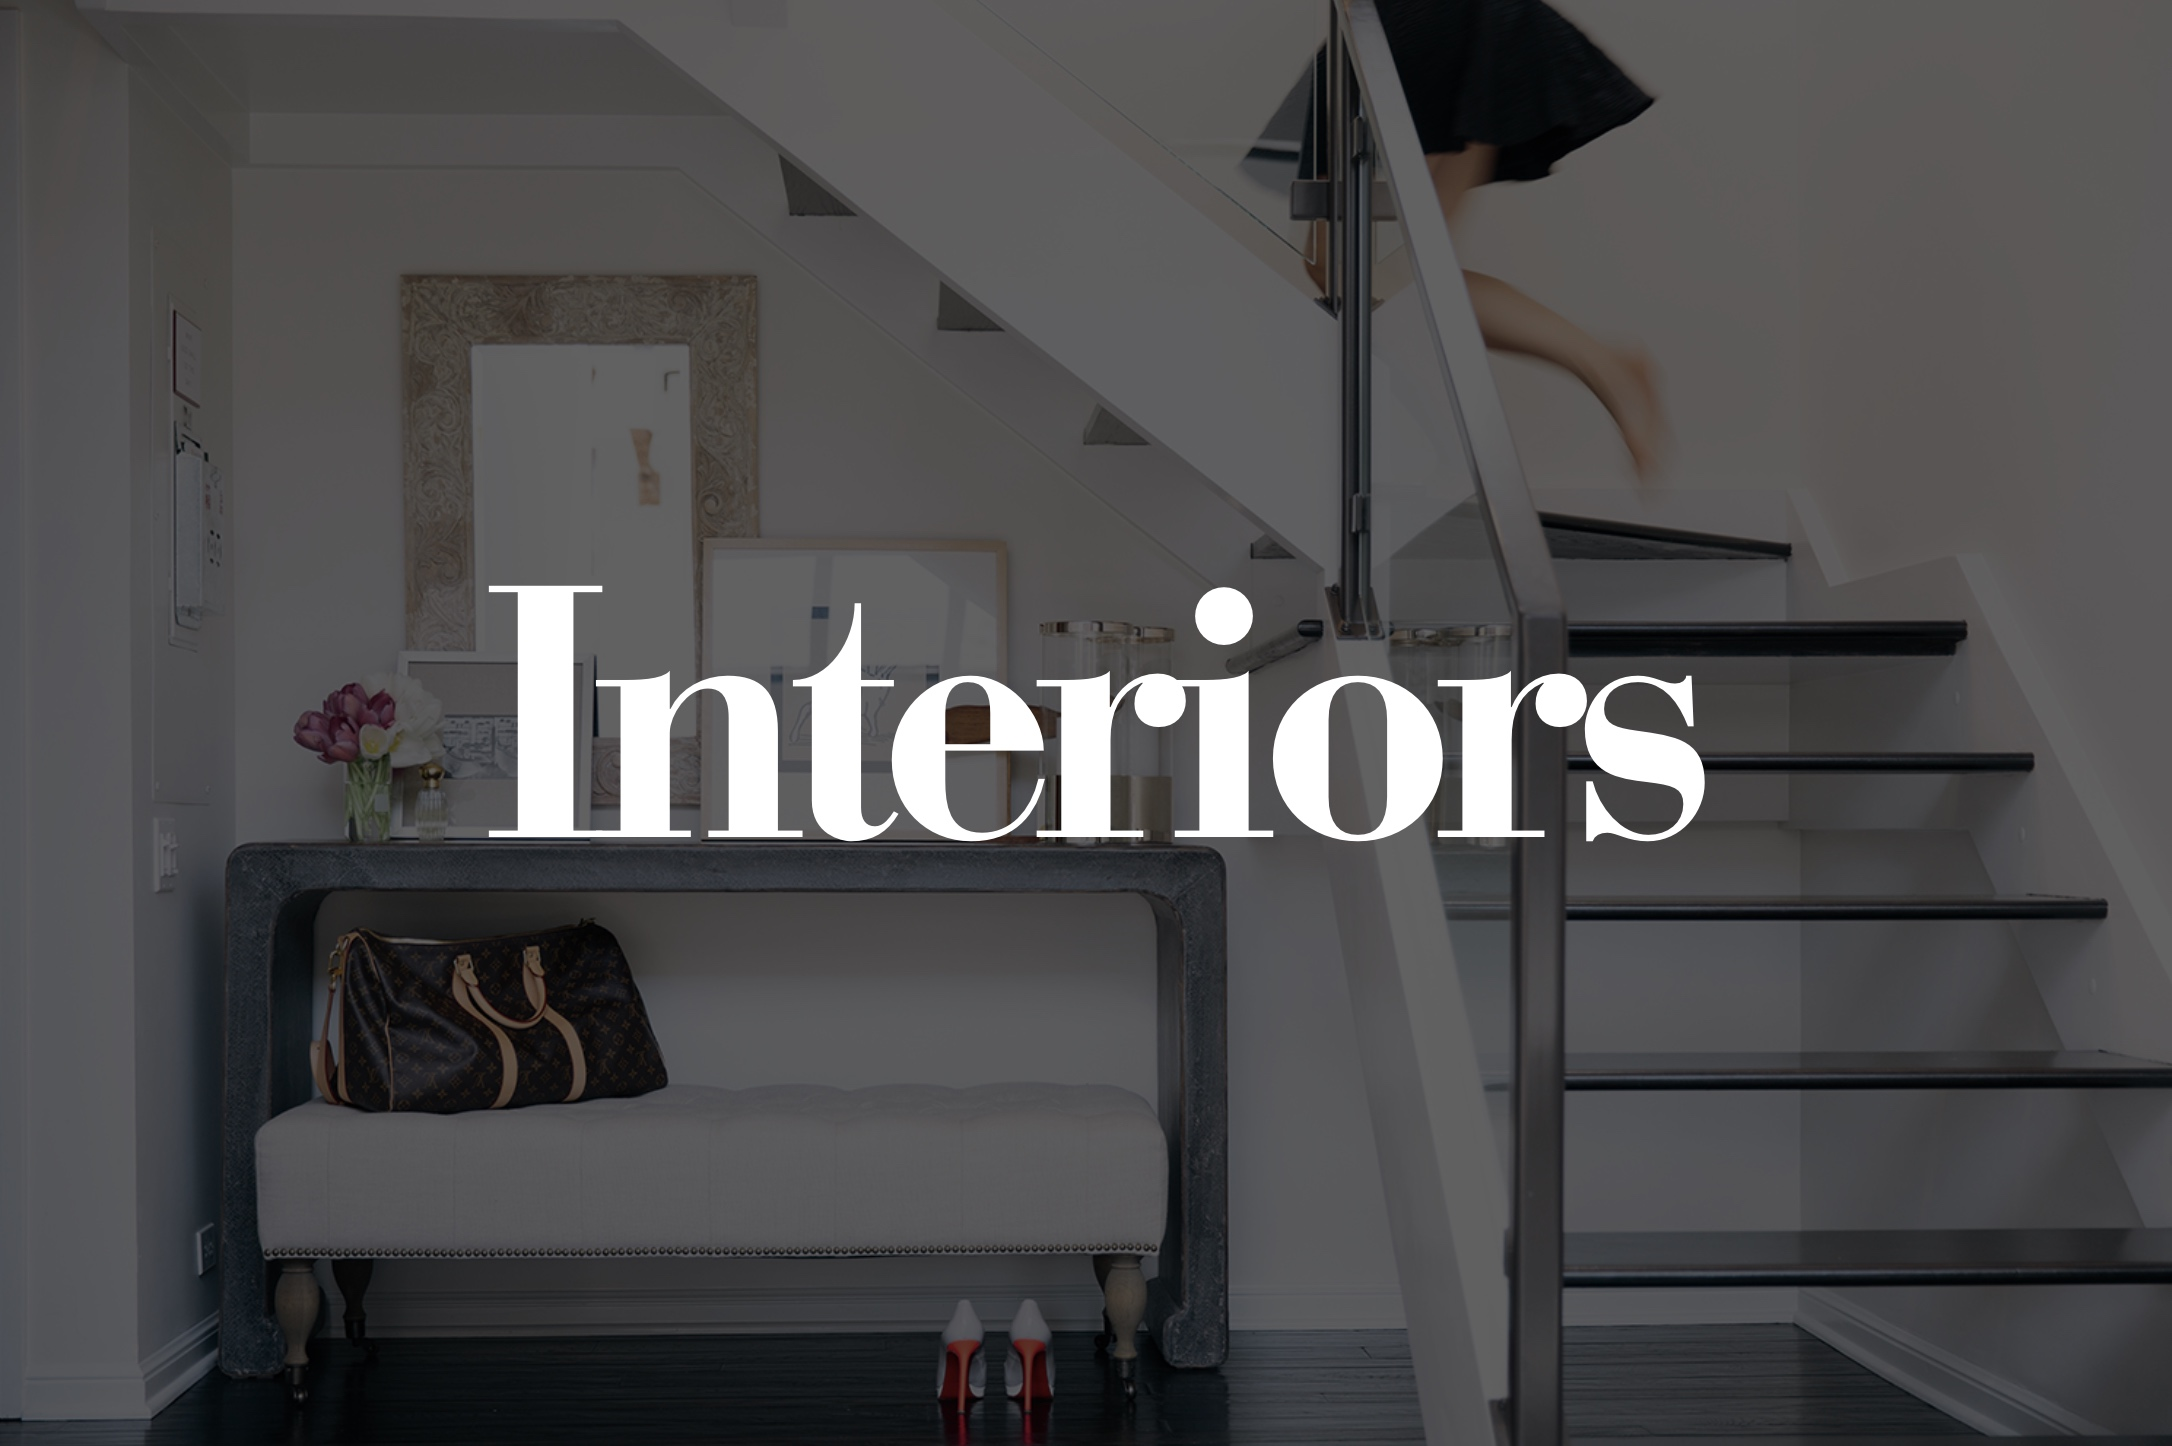 - Interiors (Spring 2019)Back by popular demand. In this hands-on technical workshop, we'll be covering the important elements of photographing residential interiors. I go in-depth on the reasons why some images stand out and why others fall flat. I'll cover the importance of styling, composition & lighting with added tips on how to get your work published. Get ready to roll up your sleeves in a series of hands-on shooting, styling & lighting demos. This workshop is for DSLR shooters both established & emerging who are ready to up their game.